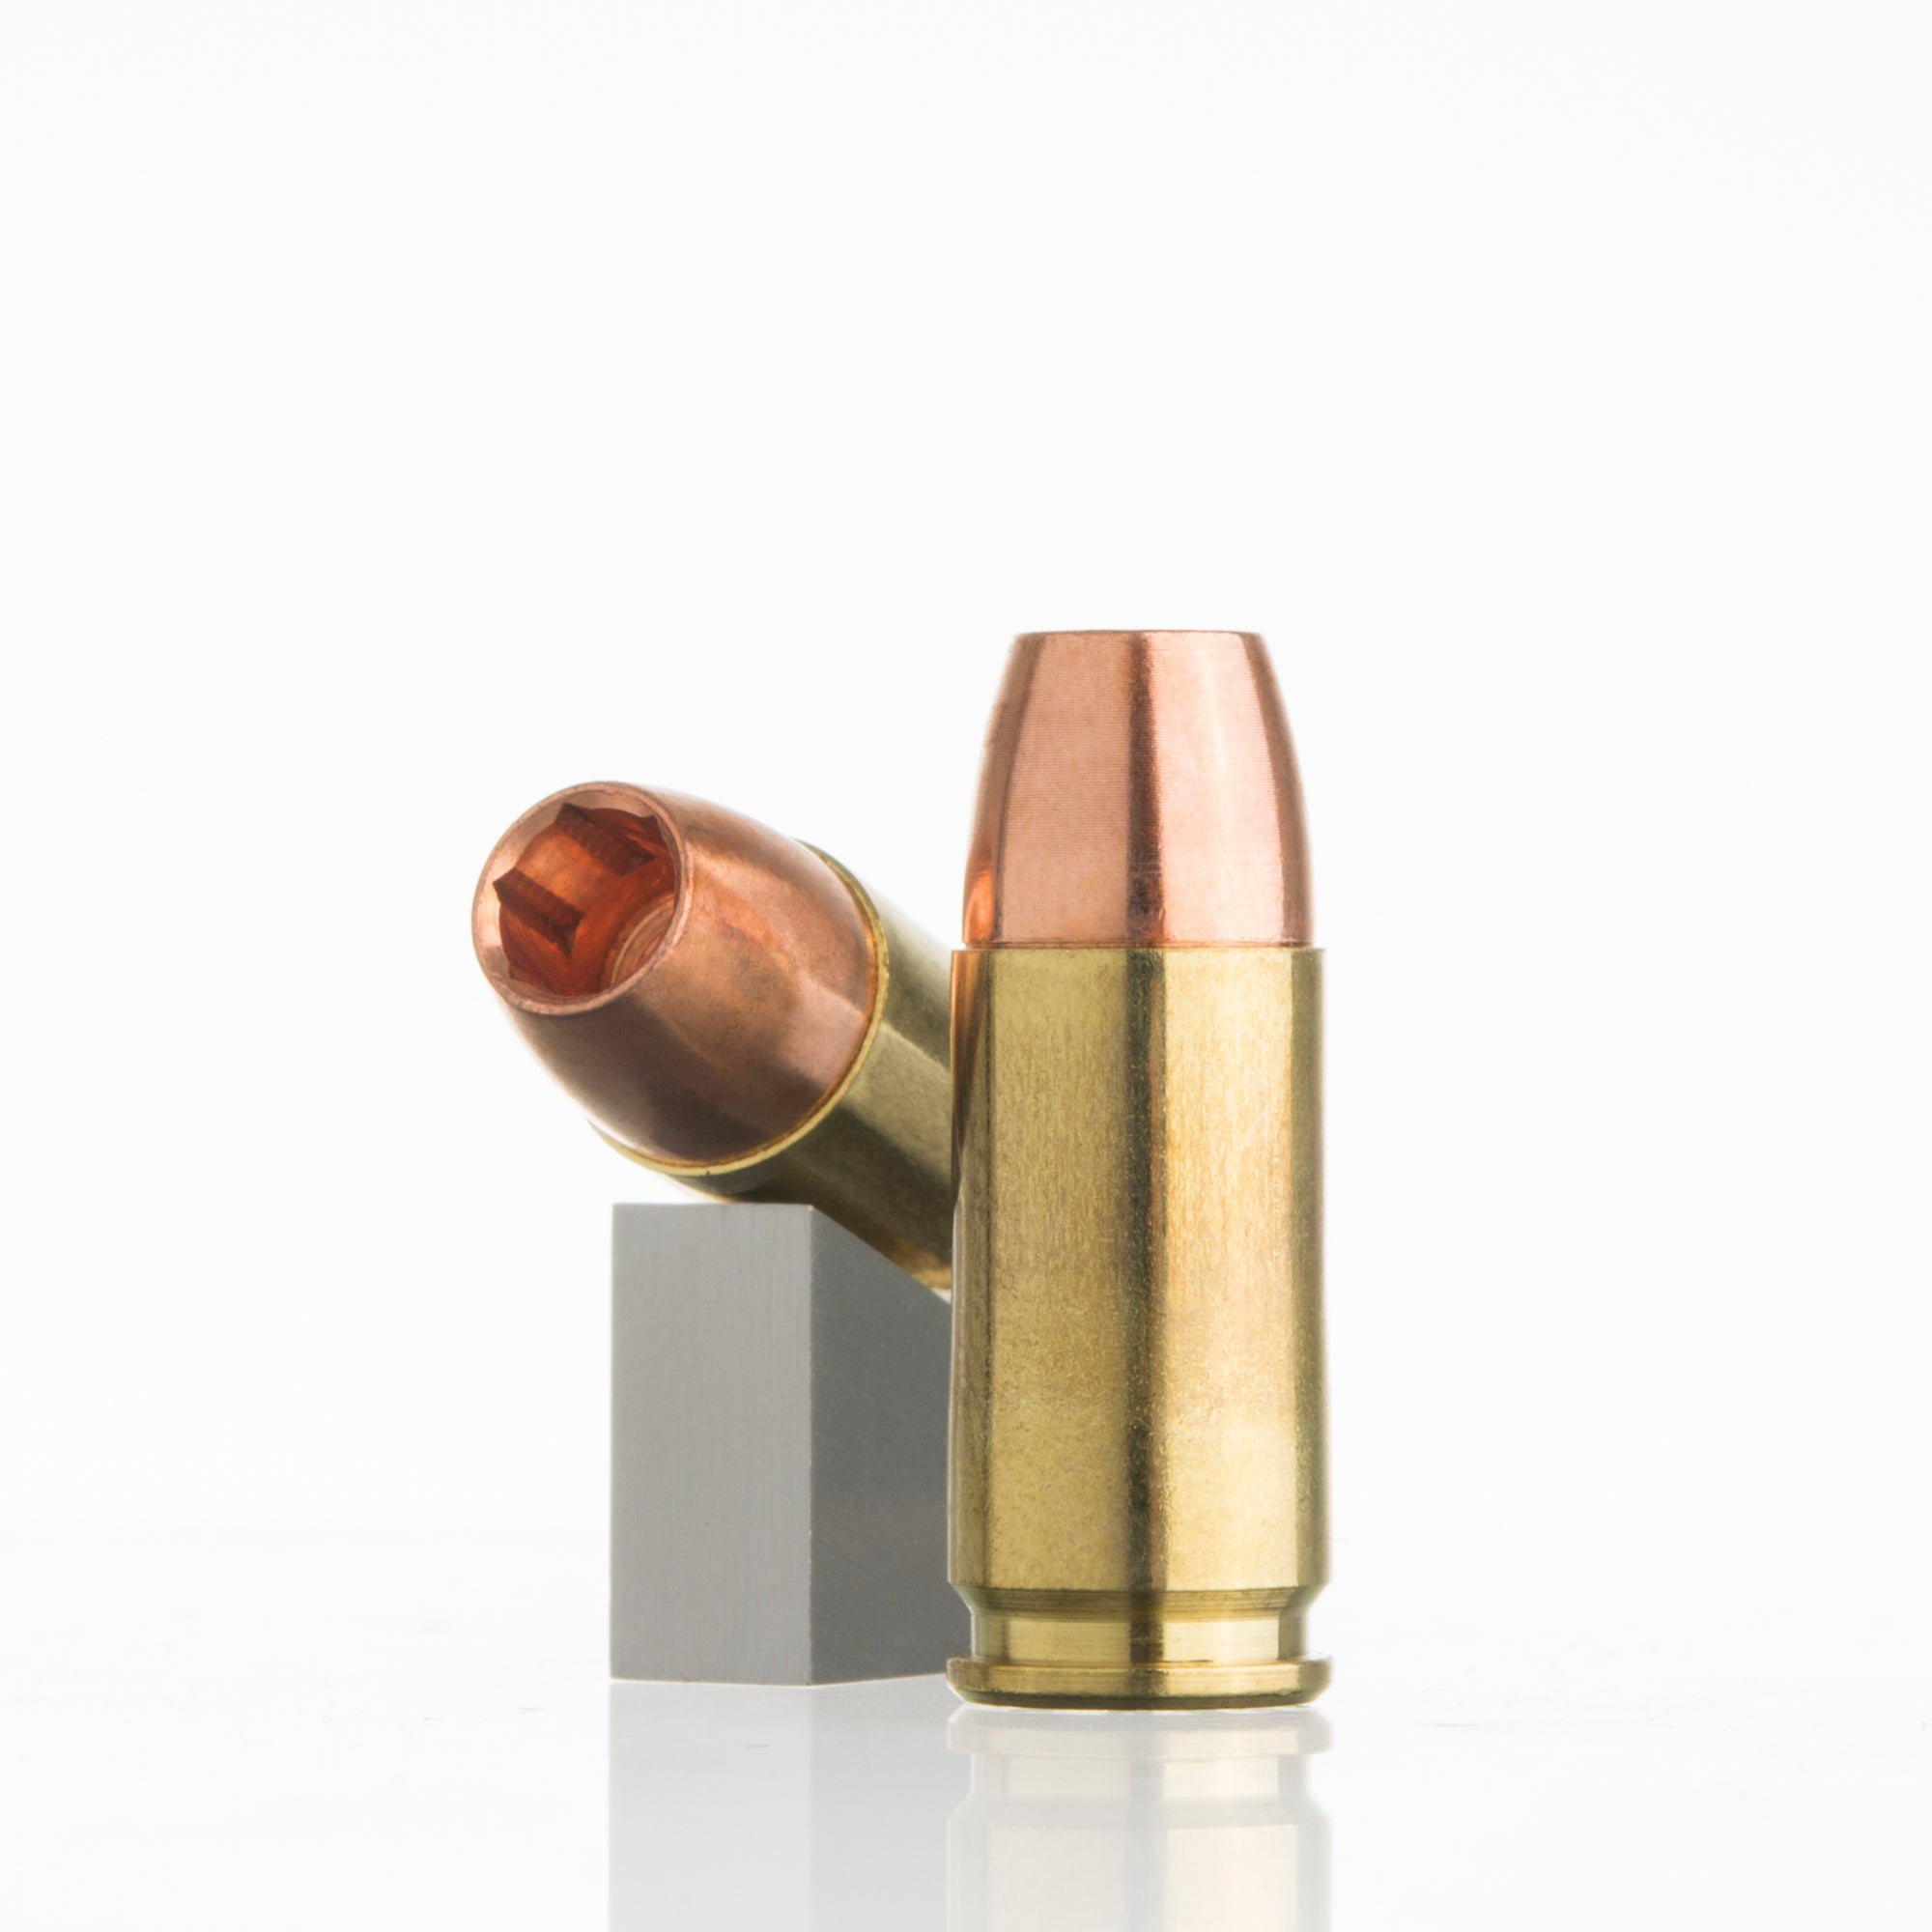 9mm Luger 70gr /High Energy Retaining Ordnance (HERO) Ammunition